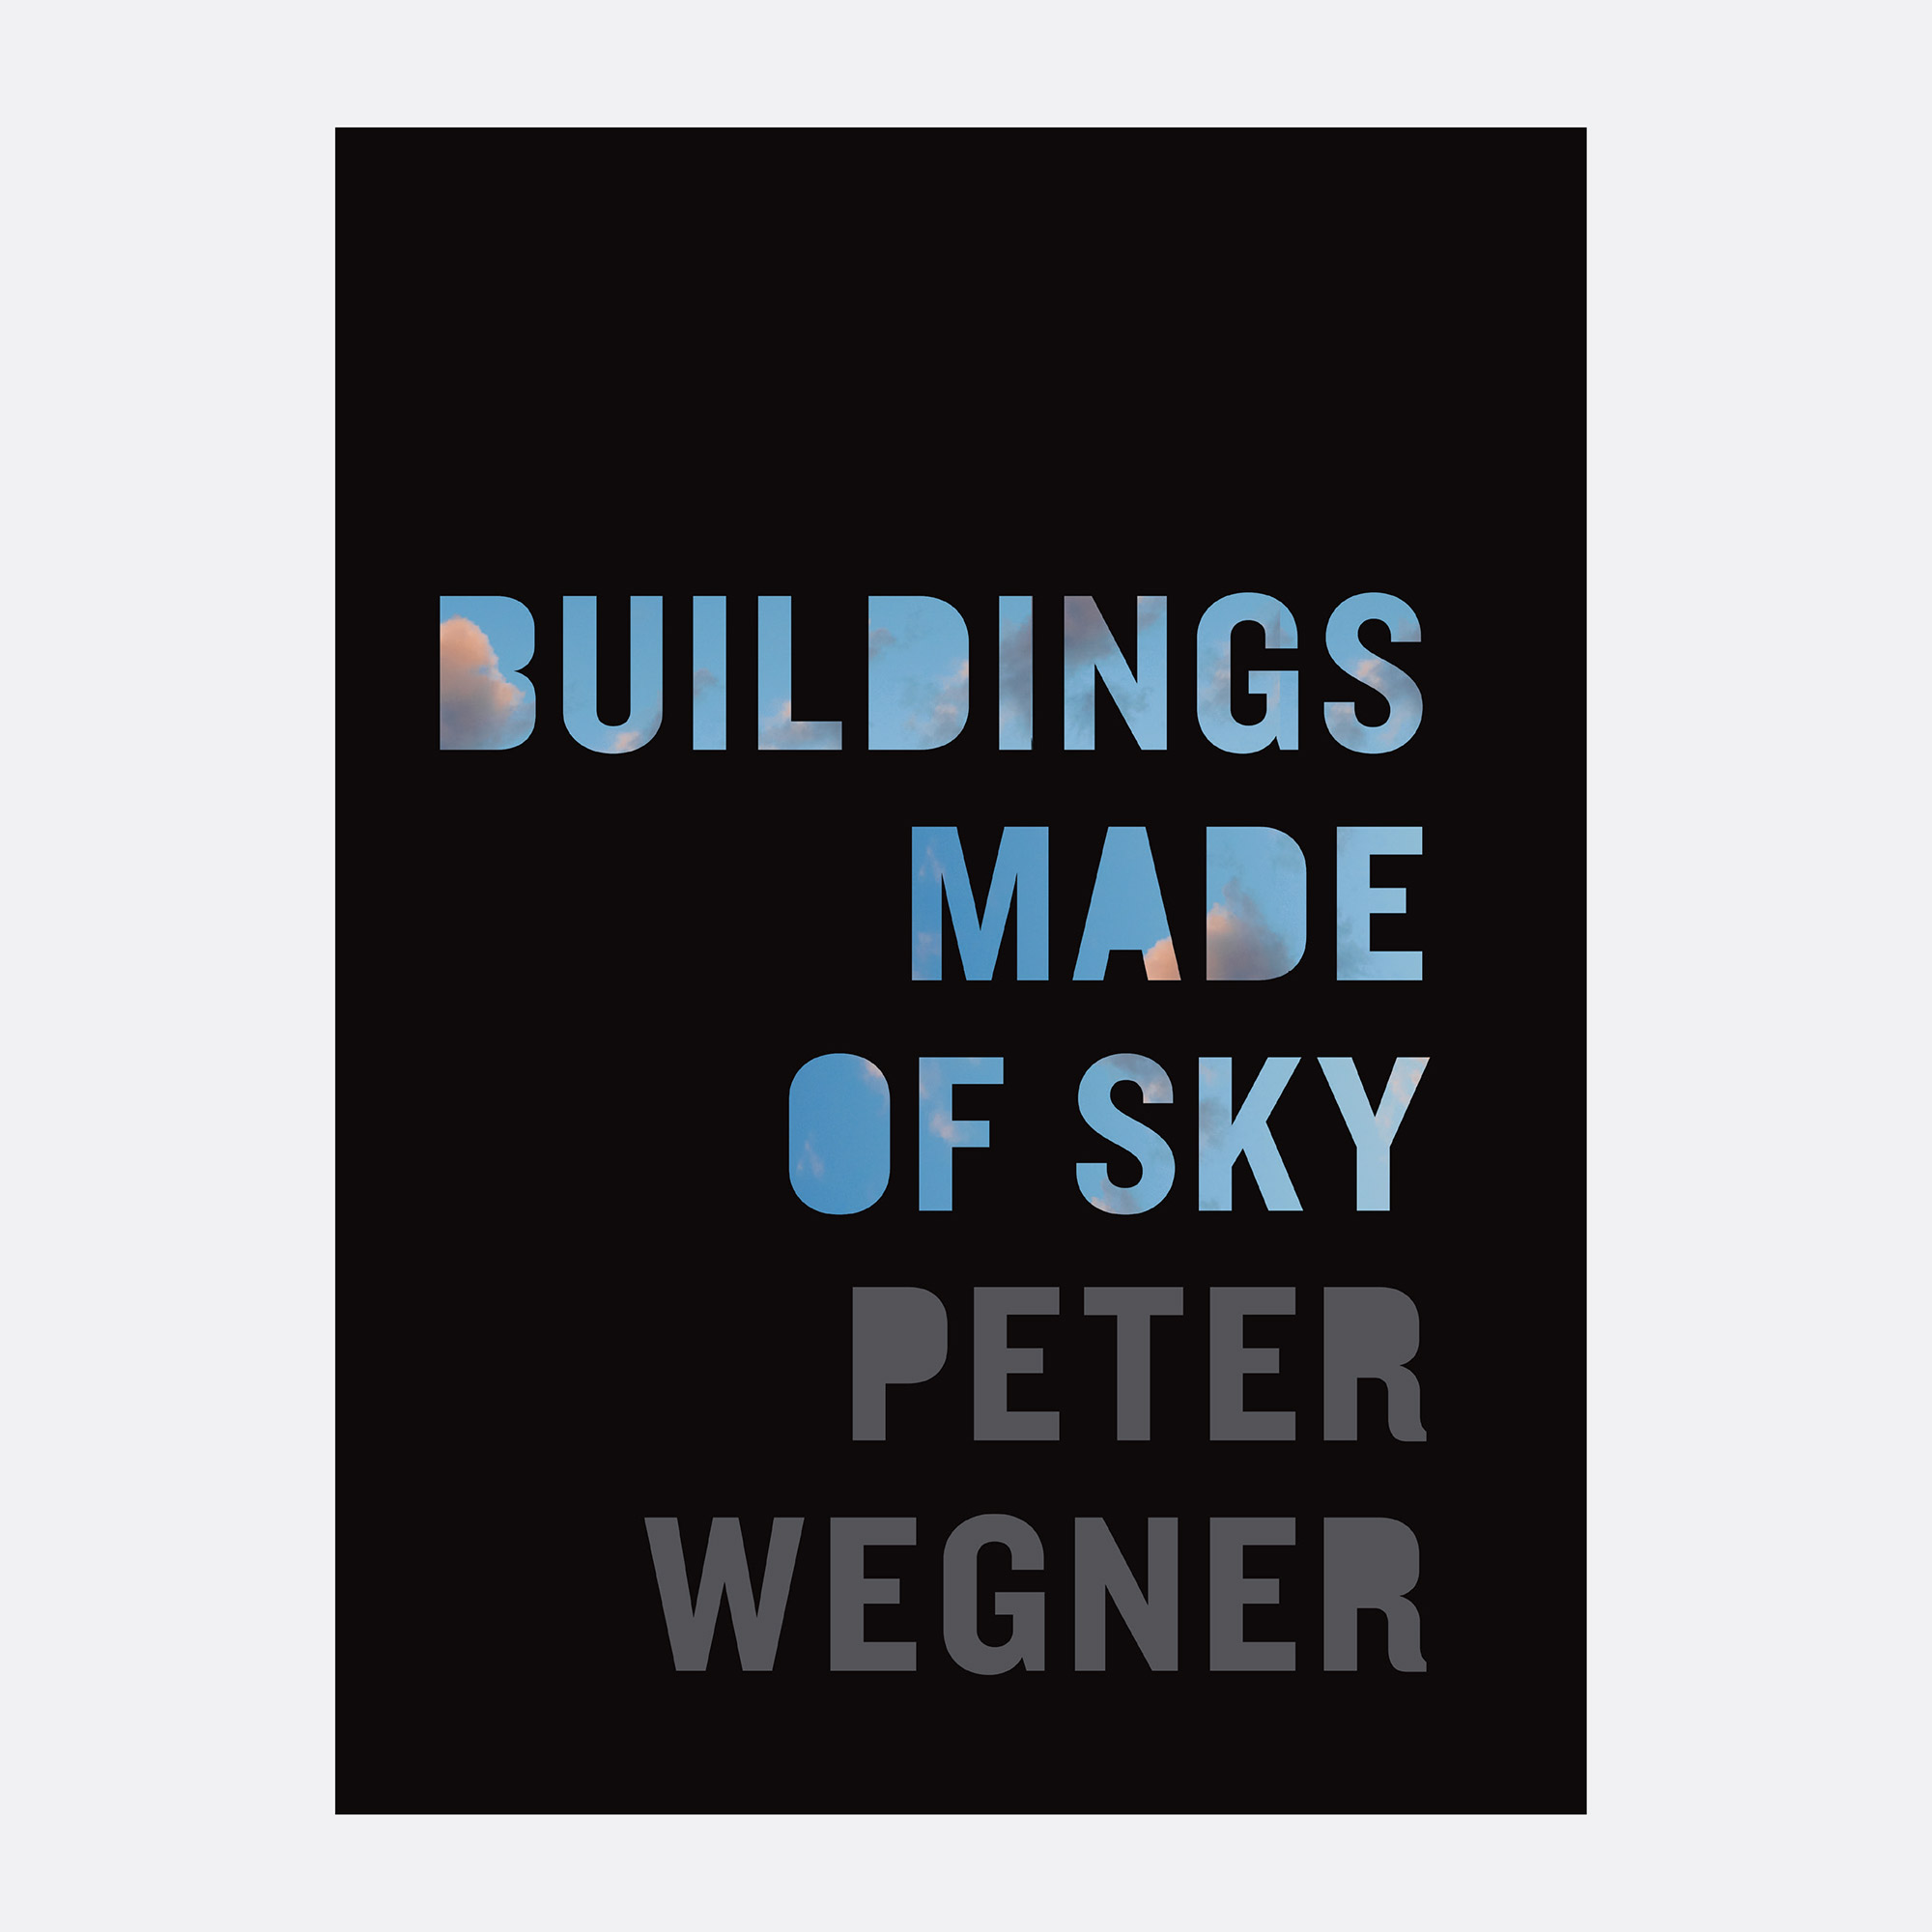 BUILDINGS MADE OF SKY